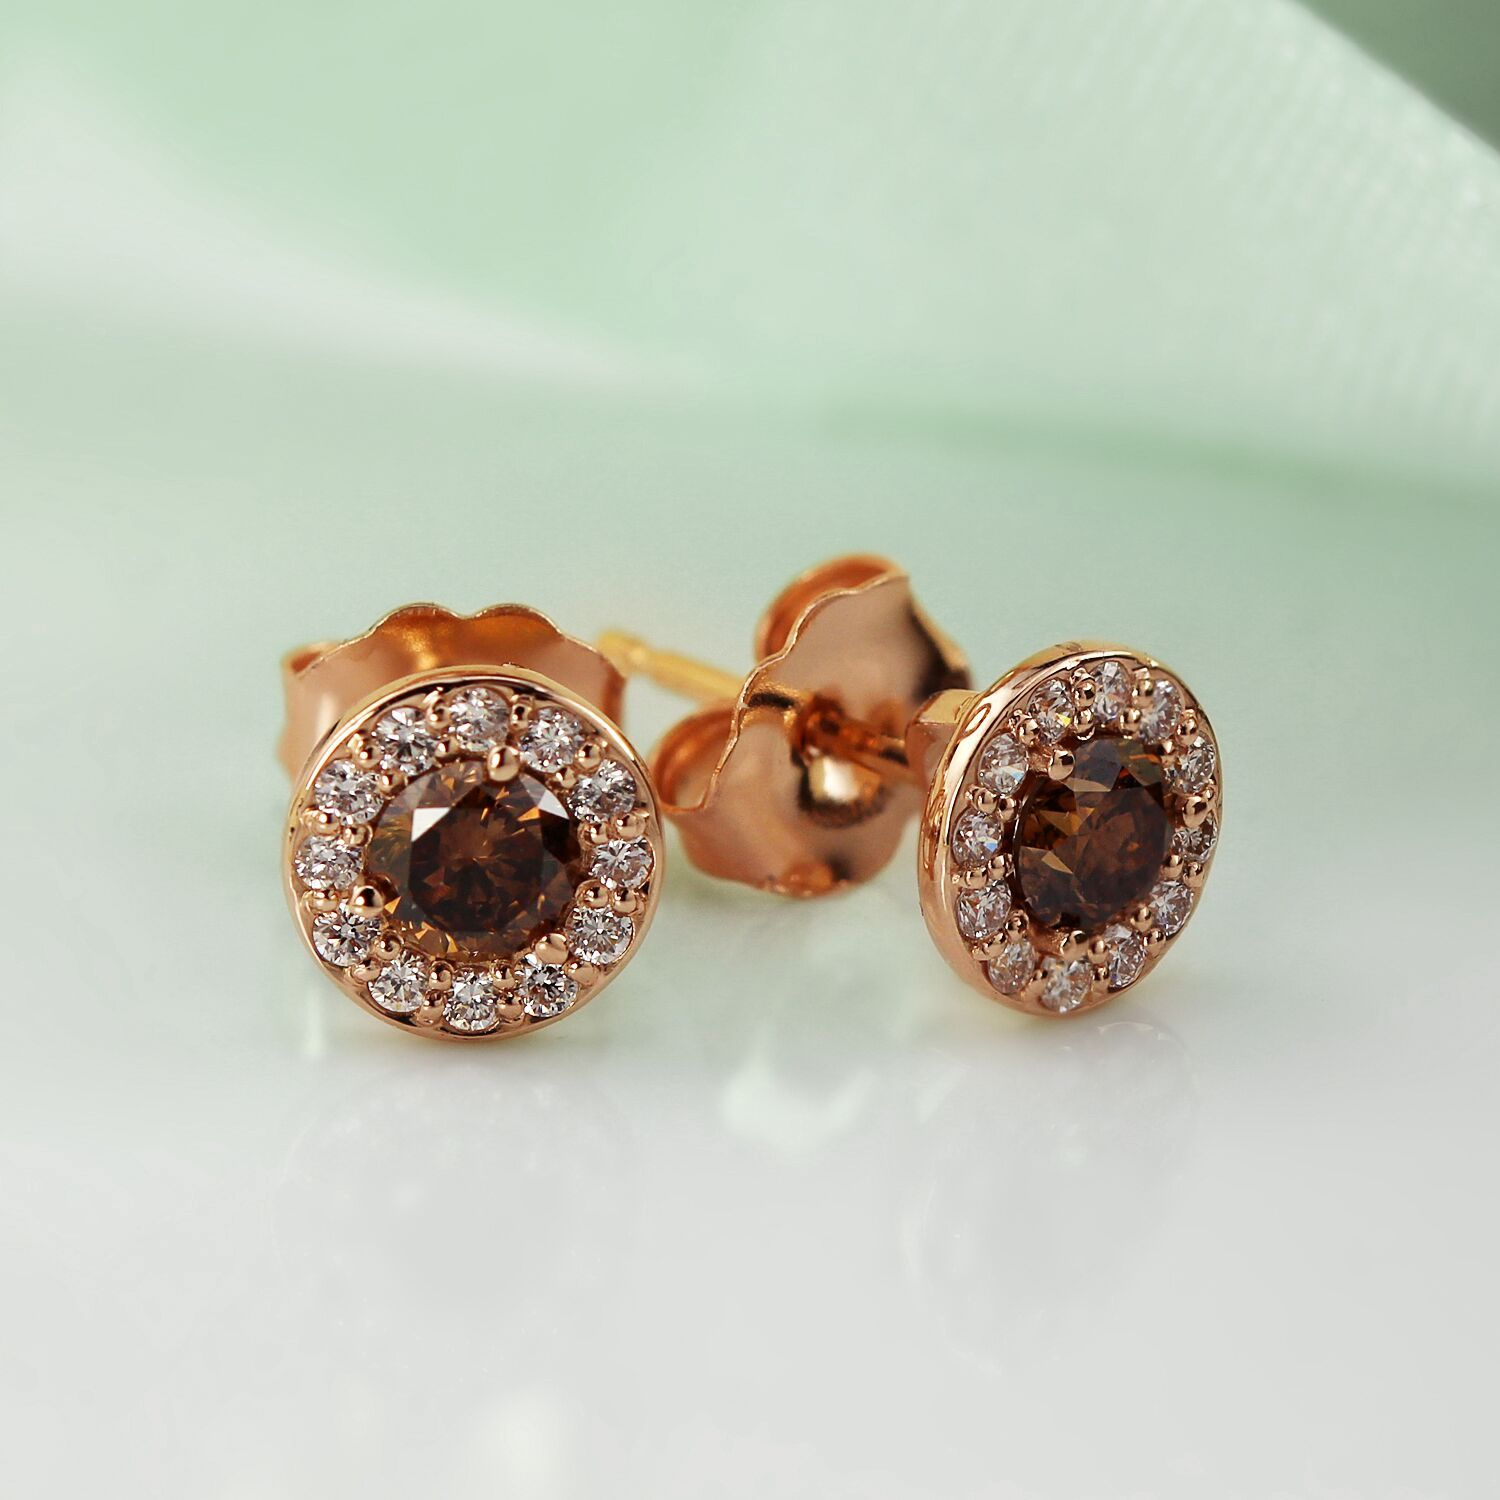 Certified 14k Rose Gold Halo Round Brown Diamond Stud Earrings 1 00 Ct Tw Brown Si1 Si2 Diamond Earrings Studs Diamond Studs Stud Earrings